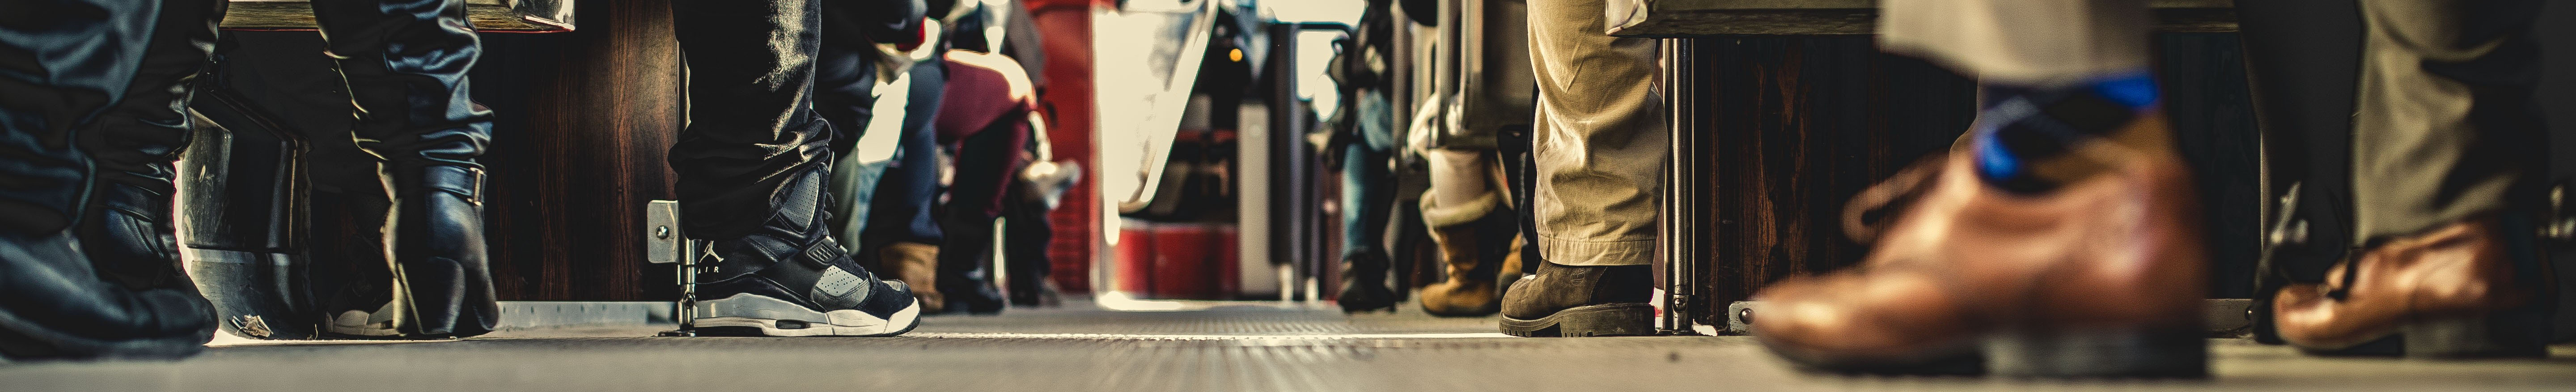 view from sitting on the back of a public bus looking forward seeing only peoples shoes. Chosen to represent people from all walks of life. Photo by Matthew Henry on Unsplash